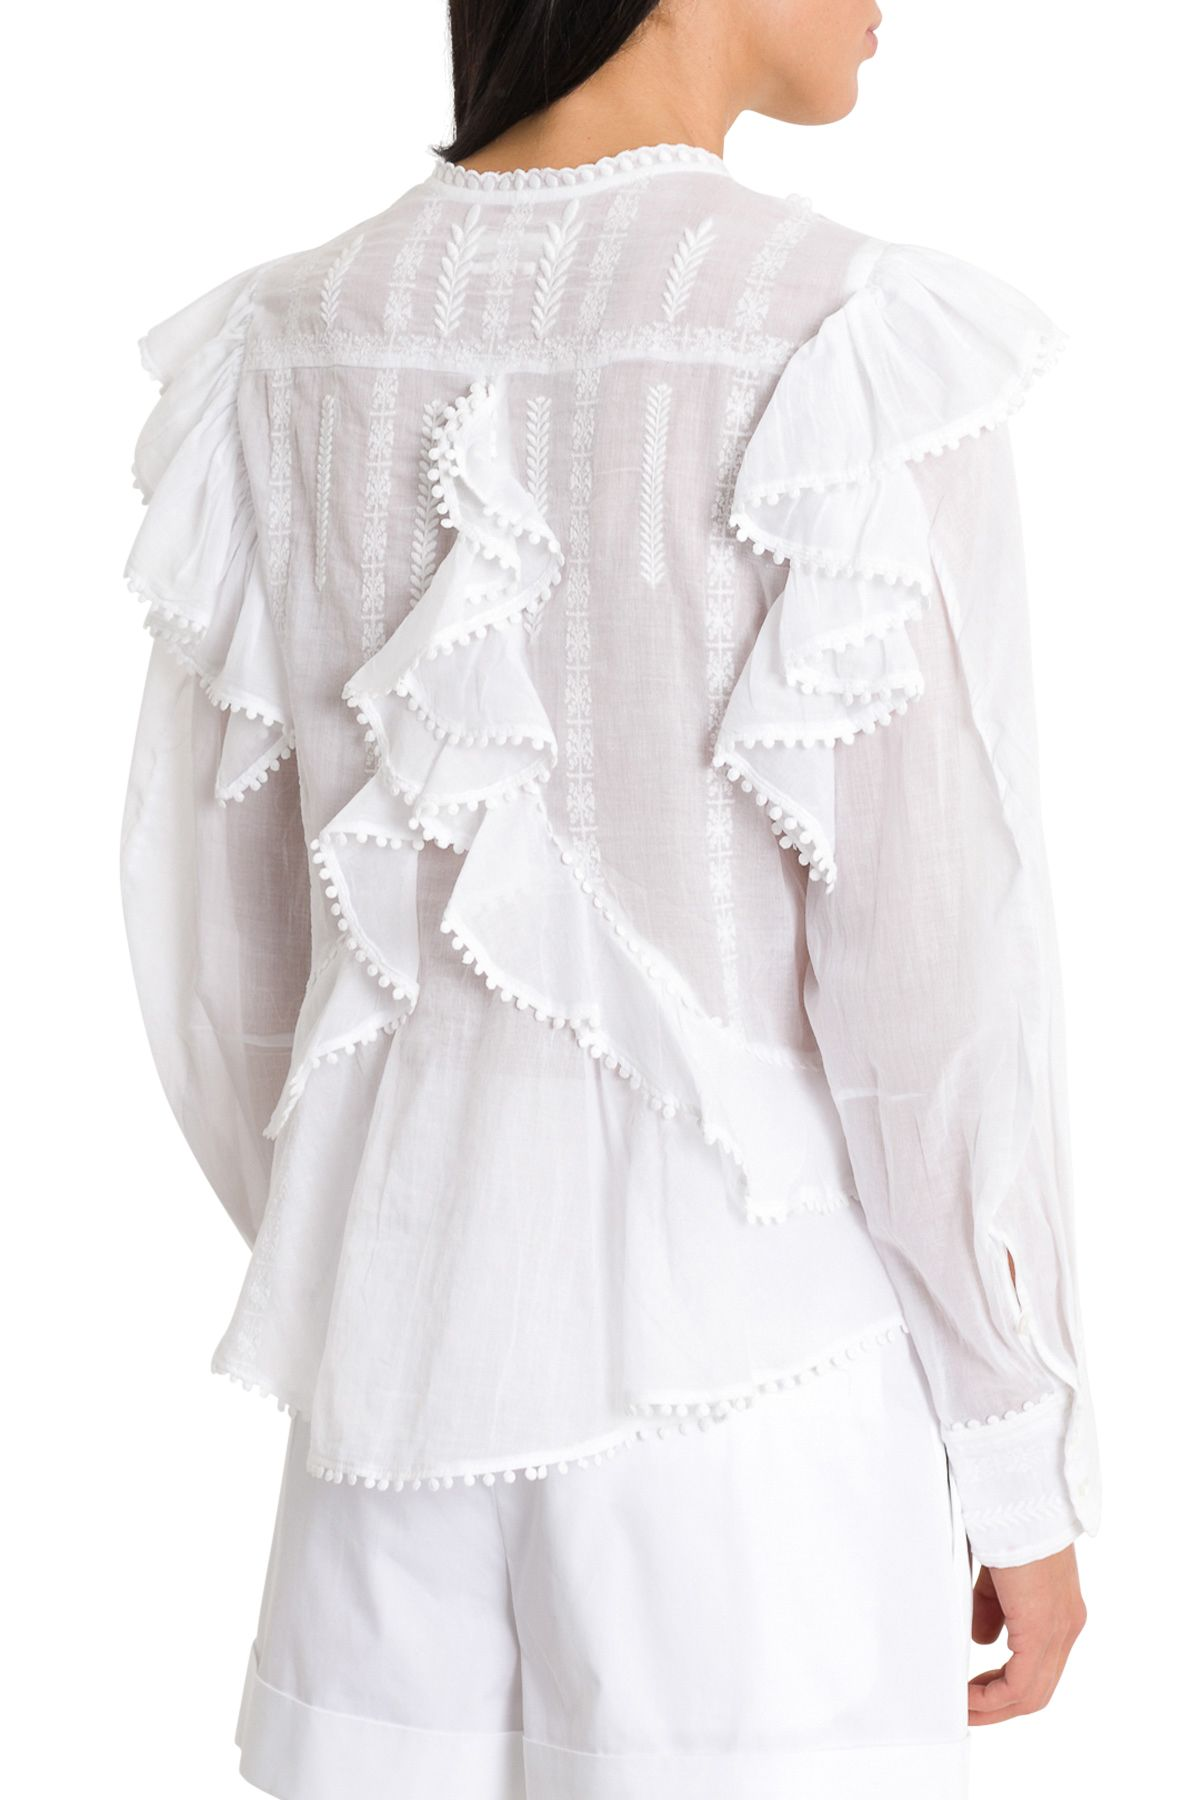 6d163643ebf ... Isabel Marant Étoile Alea Shirt With Furrles And Embroideries - Bianco